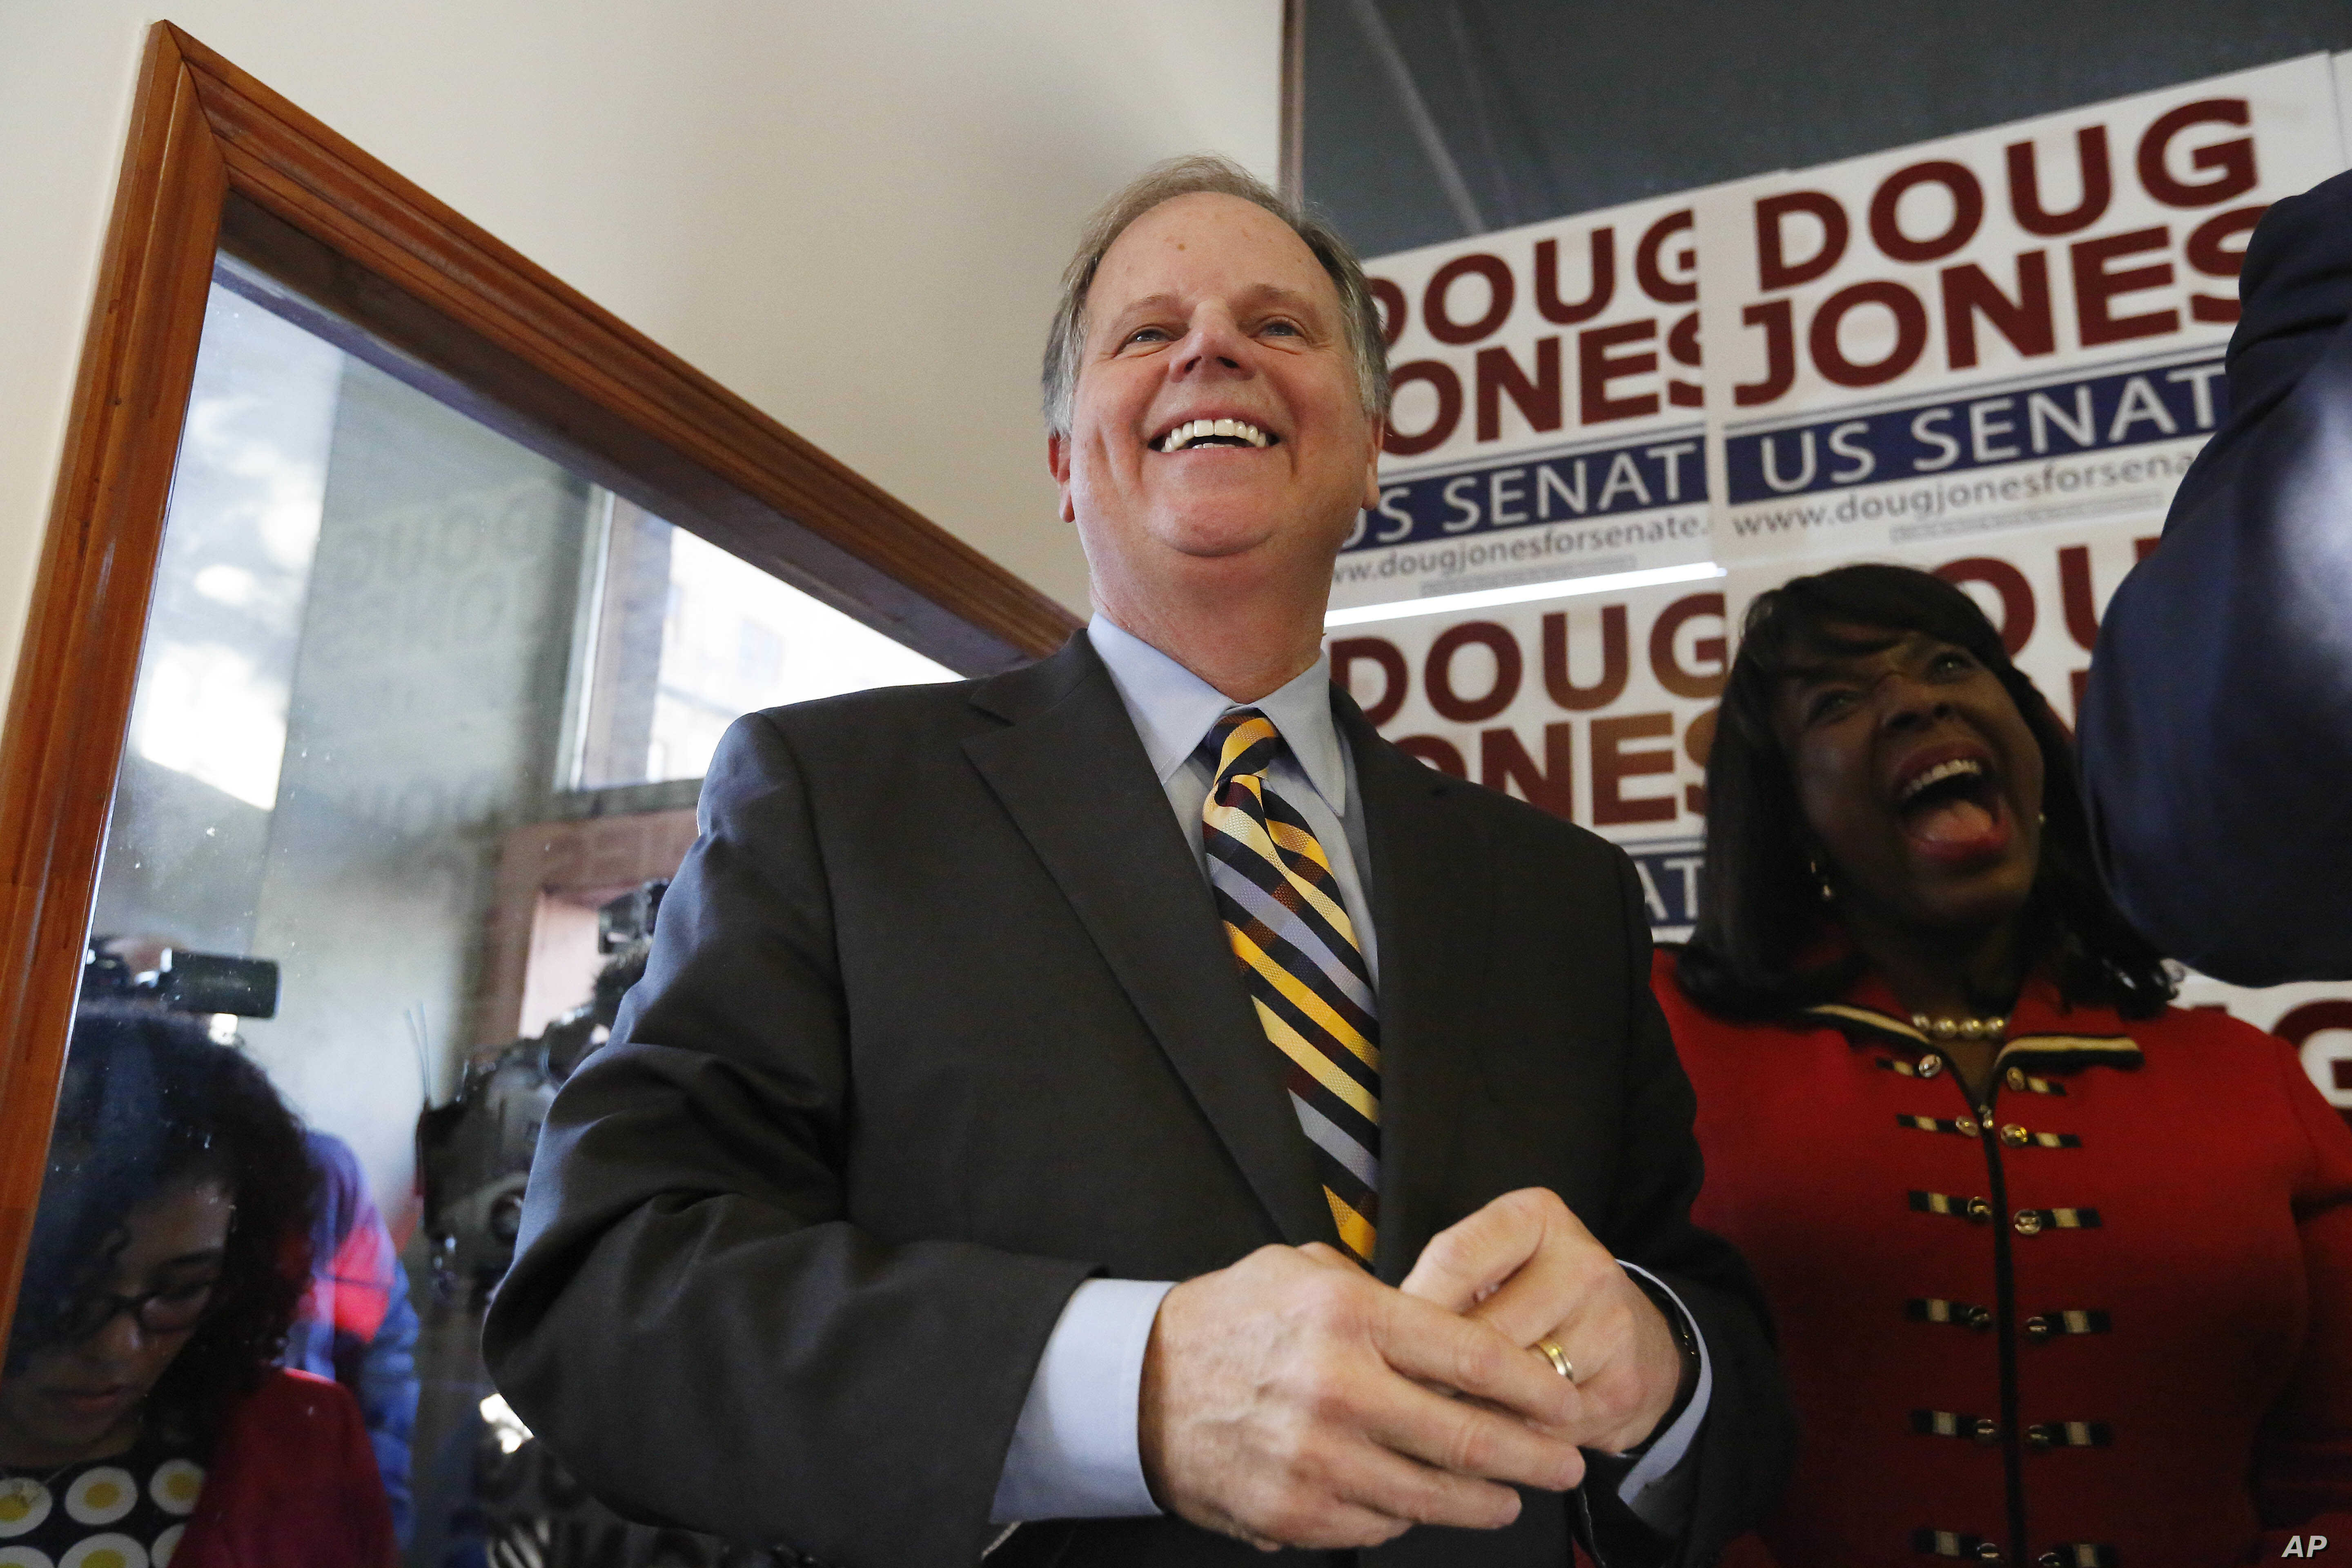 Democratic senatorial candidate Doug Jones speaks during a campaign rally Sunday, Dec. 10, 2017, in Birmingham, Alabama.